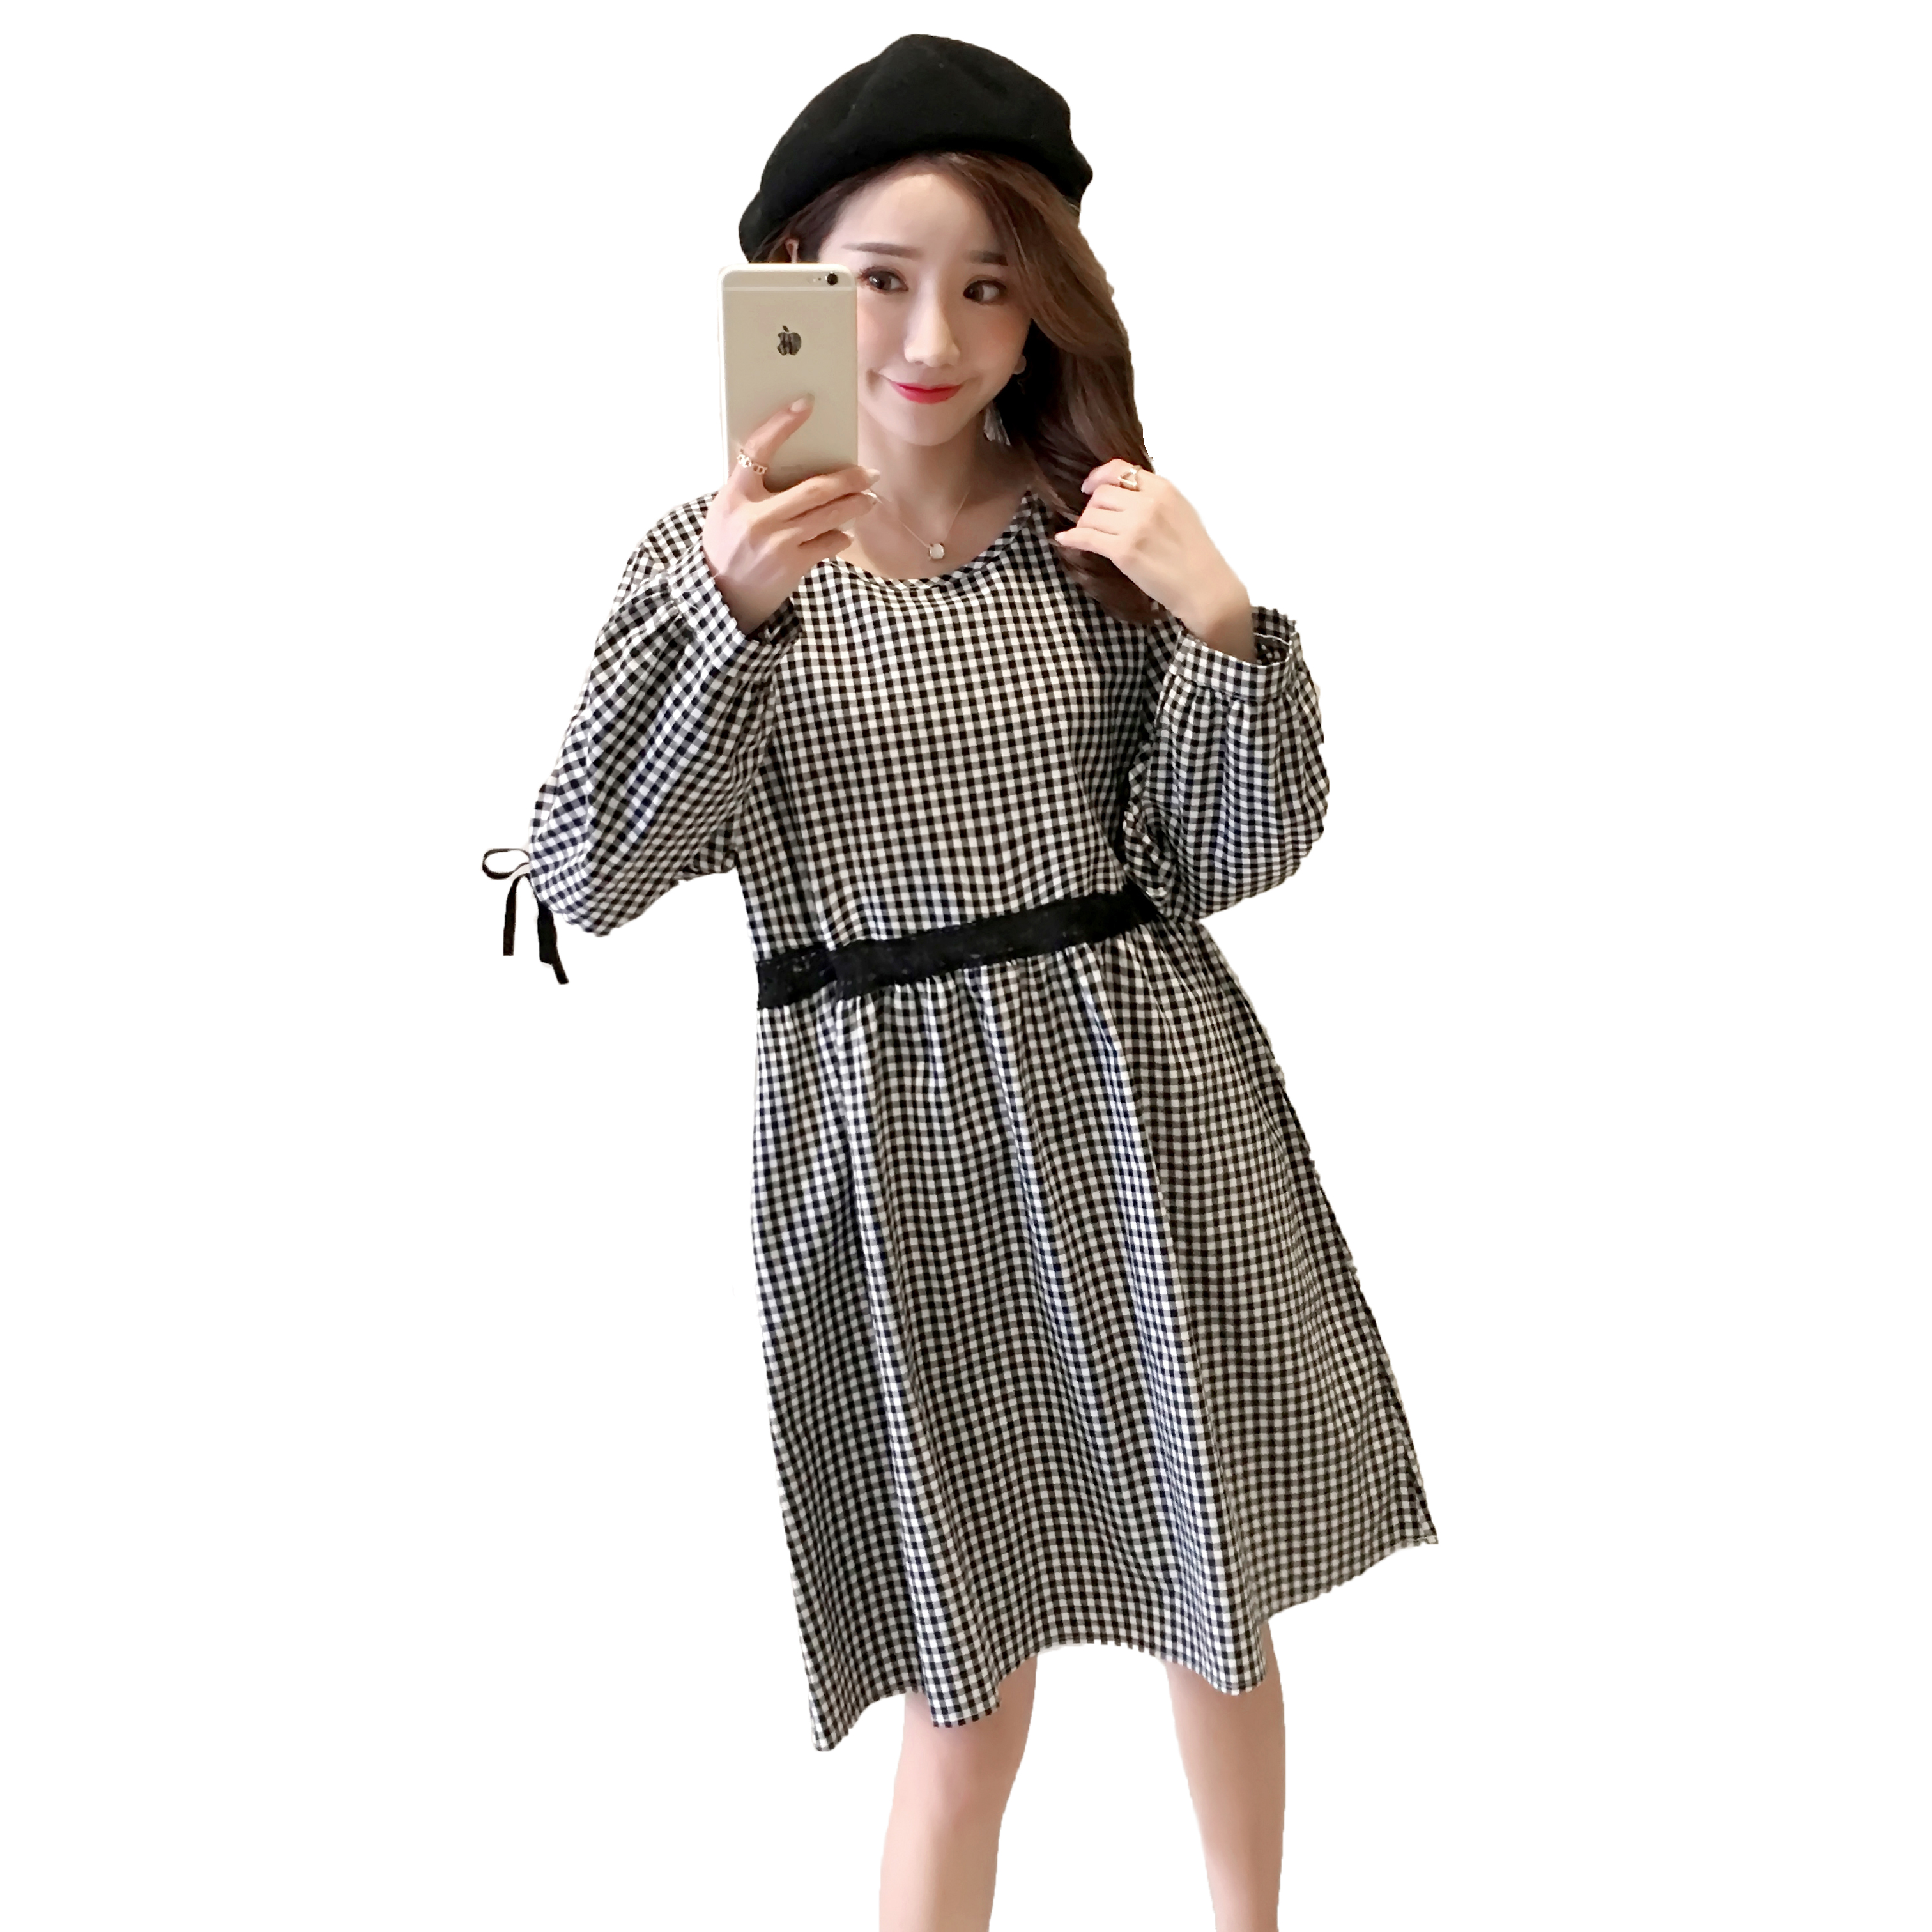 Plaid Maternity Dress Pregnancy Clothes Cotton Fashion Long Sleeve Pregnancy Clothing Of Pregnant Women 2018 Black